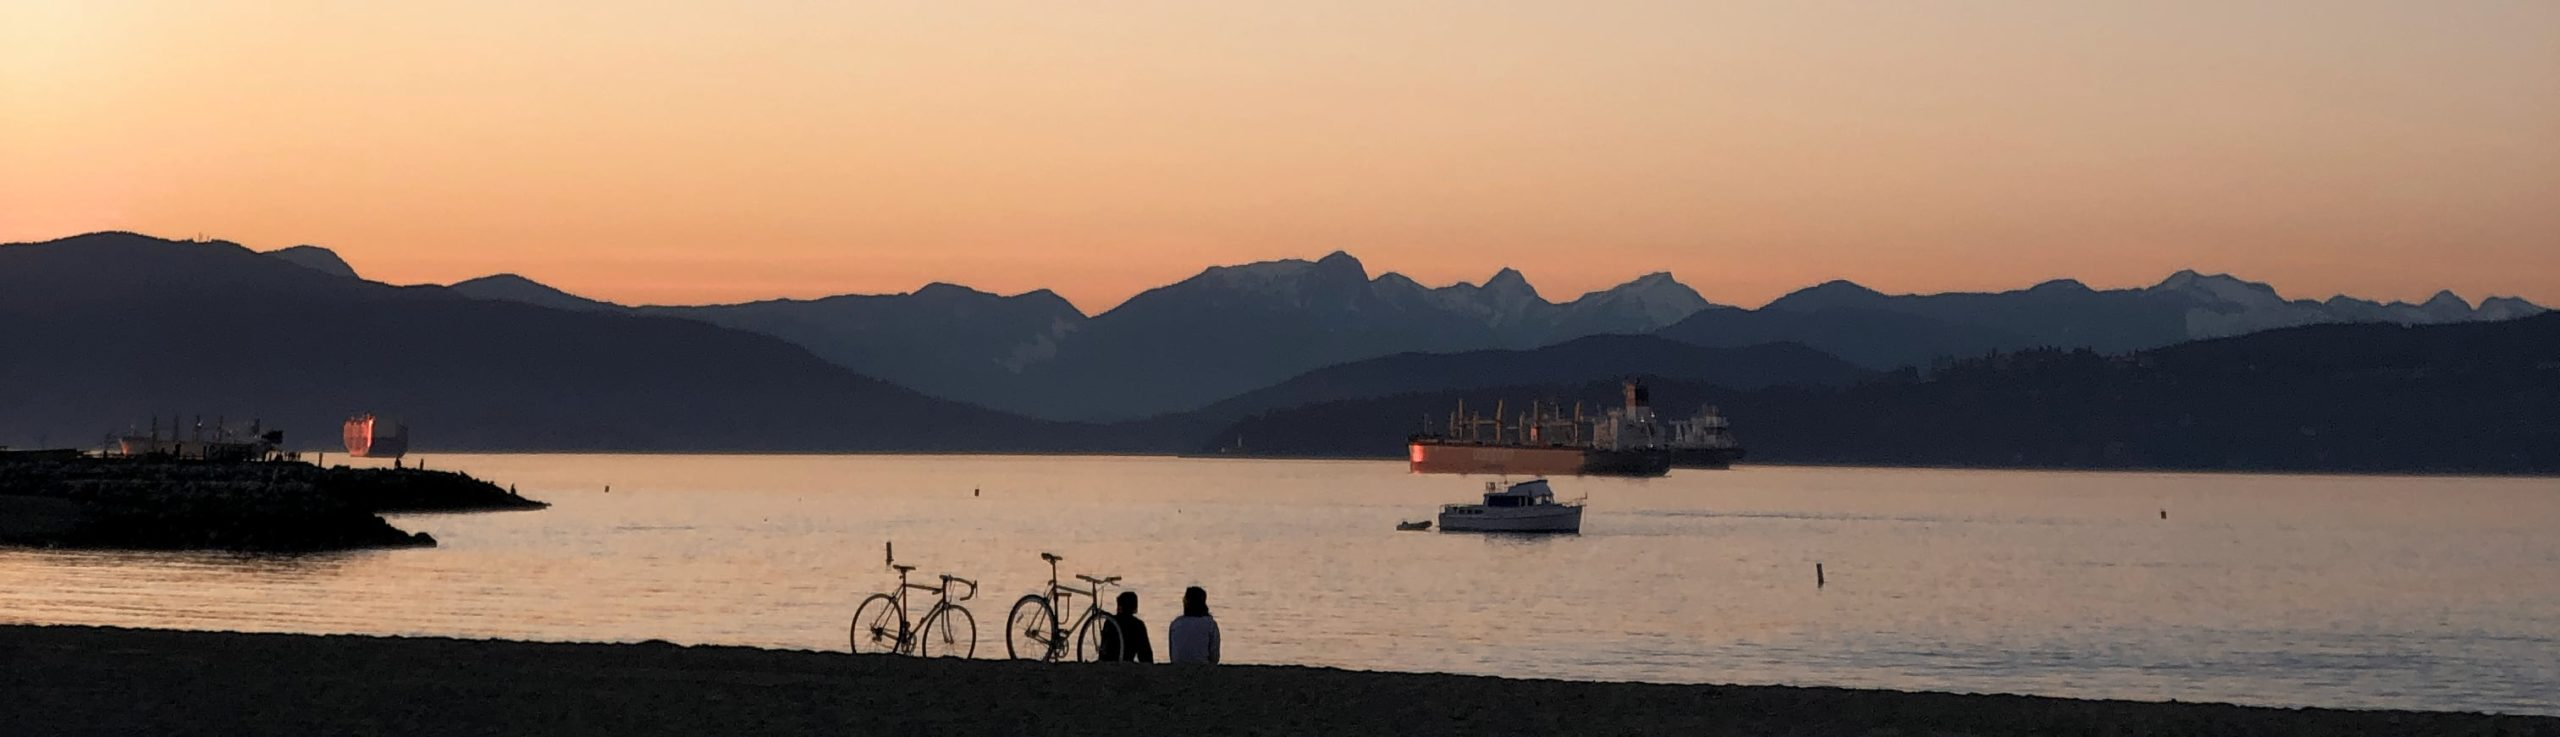 Bicycles and boats, sunset at Jericho beach